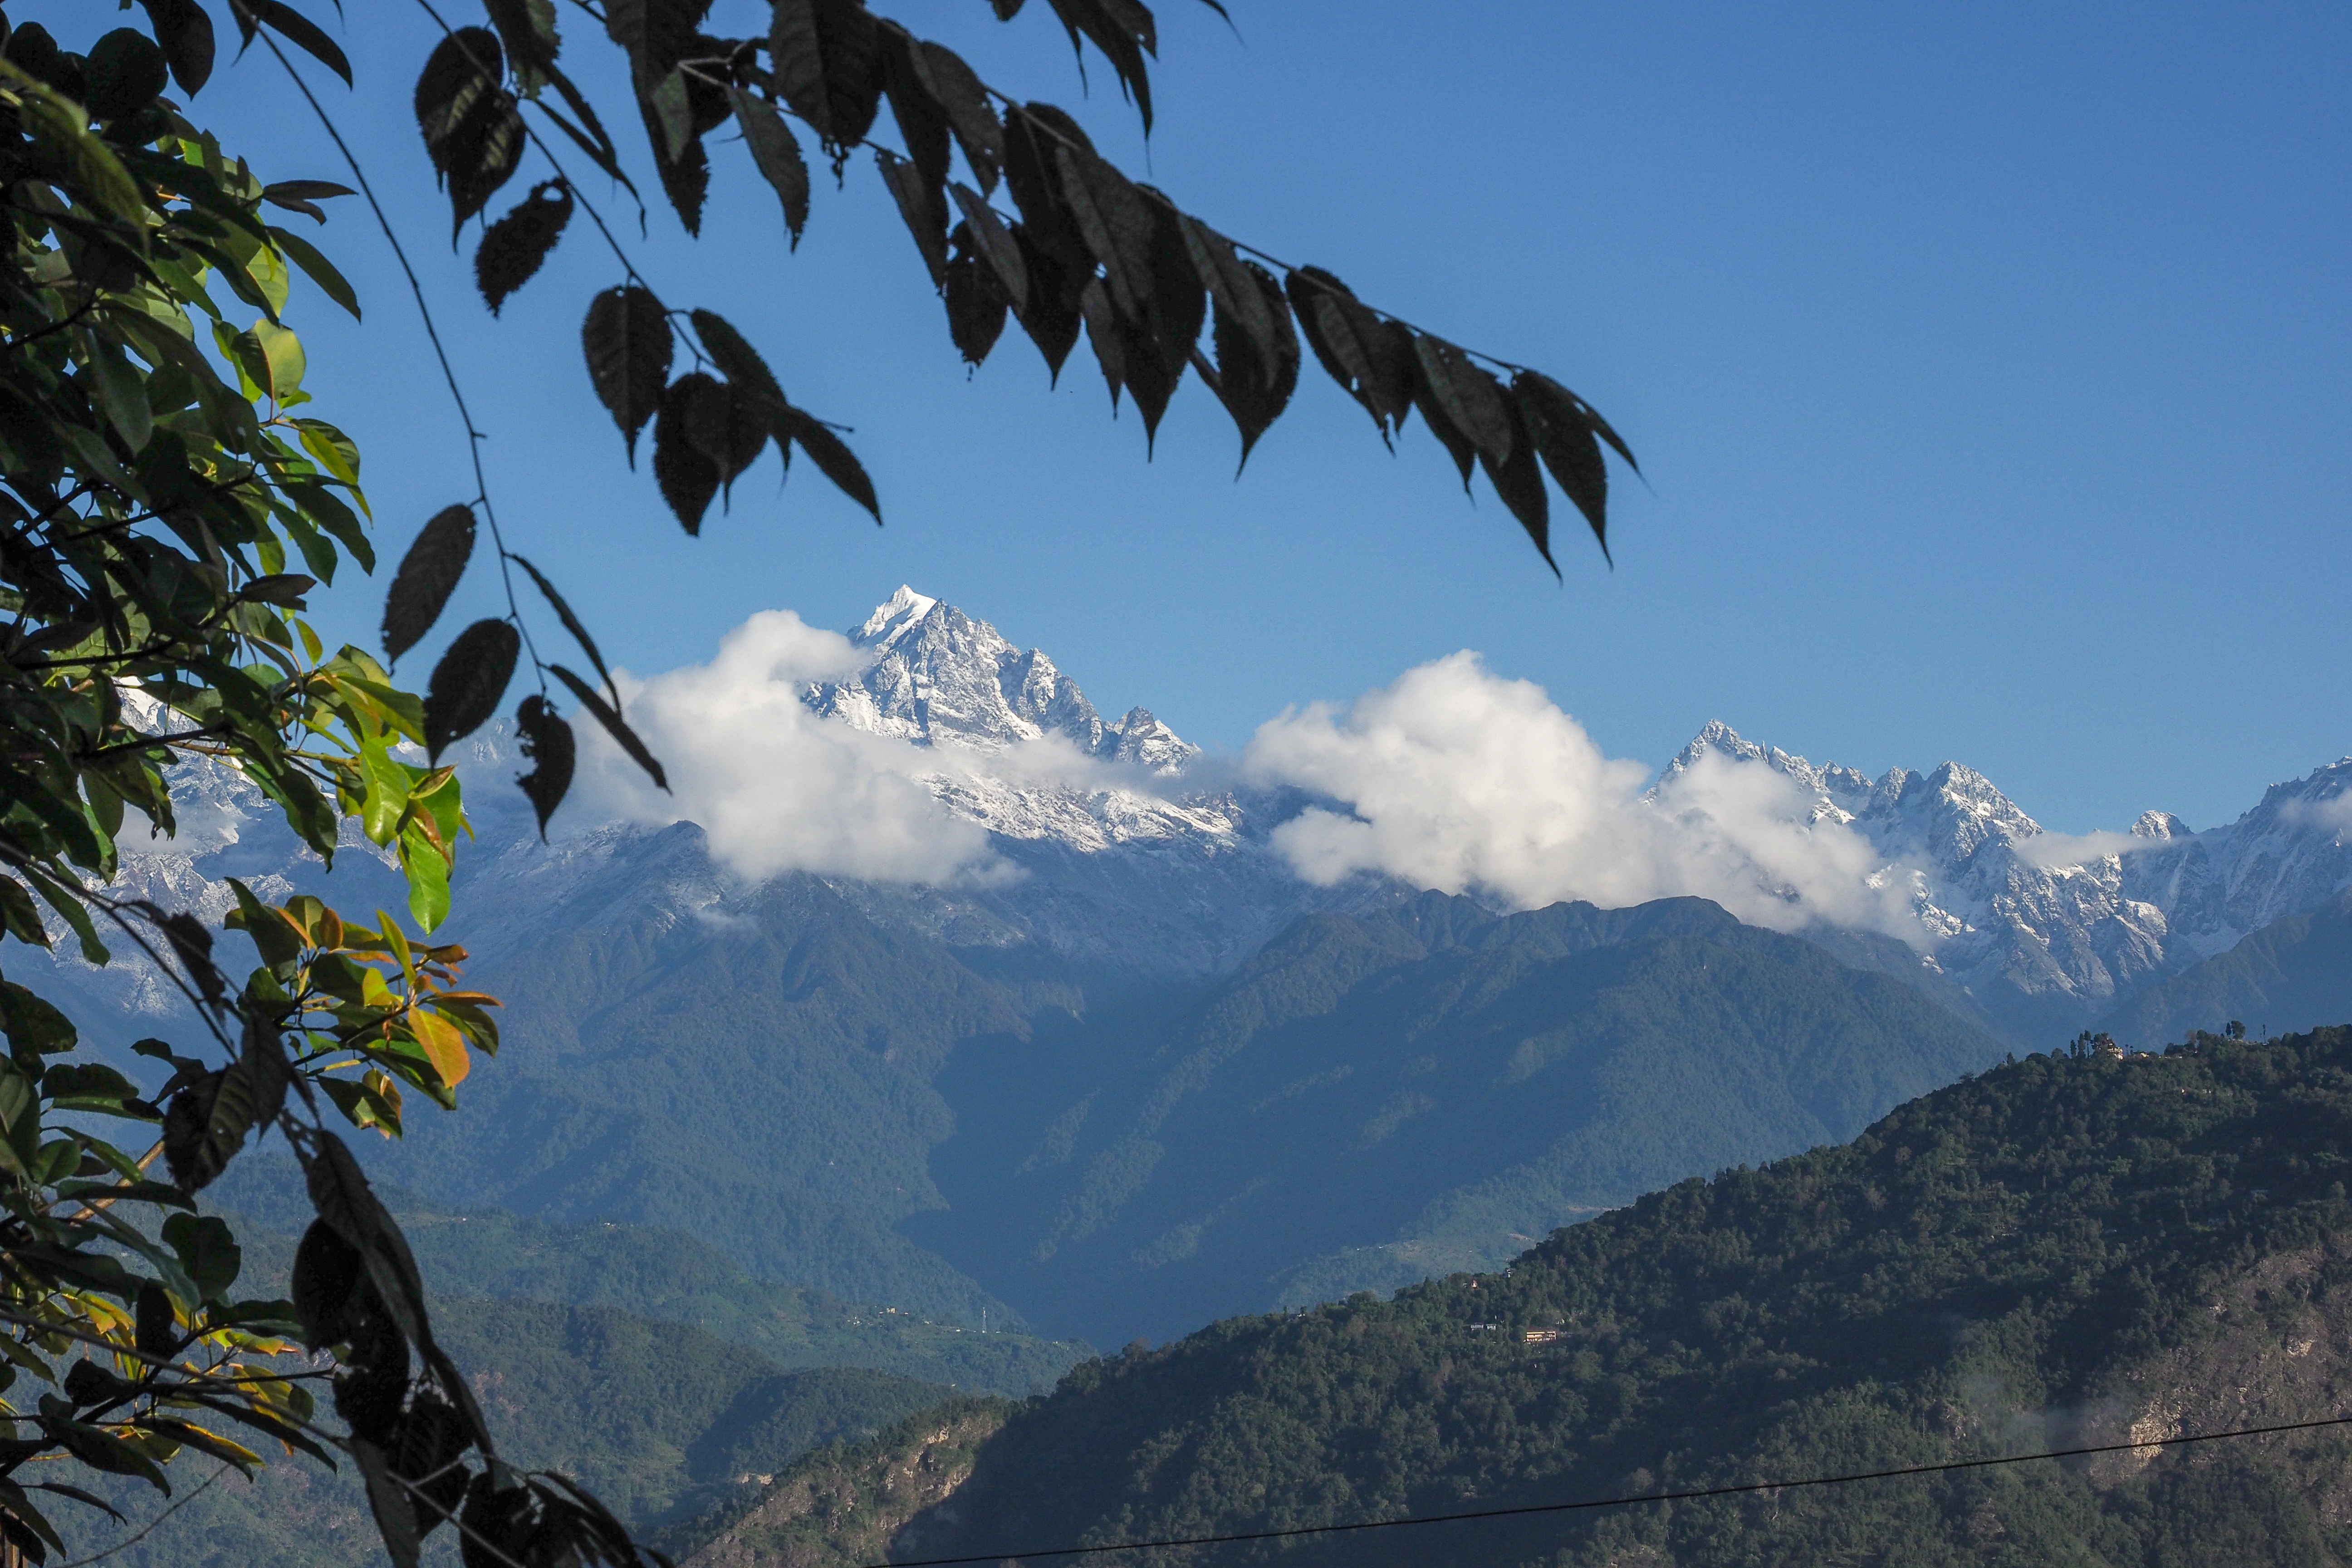 View of the Himalaya Mountains